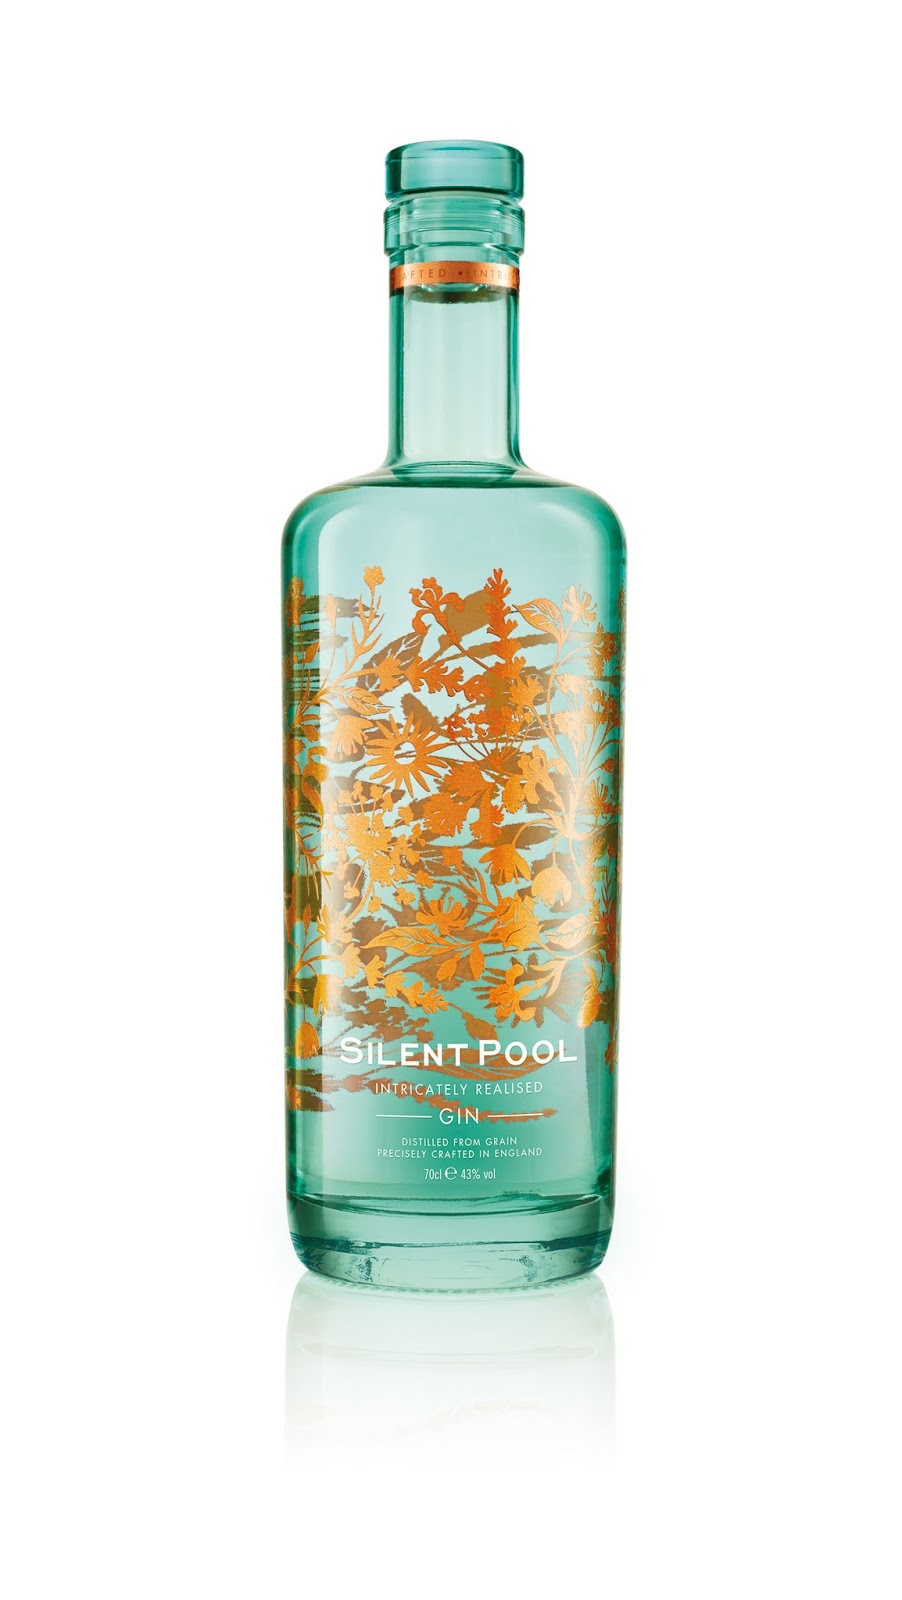 Silent pool distillers on packaging of the world creative package design gallery - Silent pool gin ...